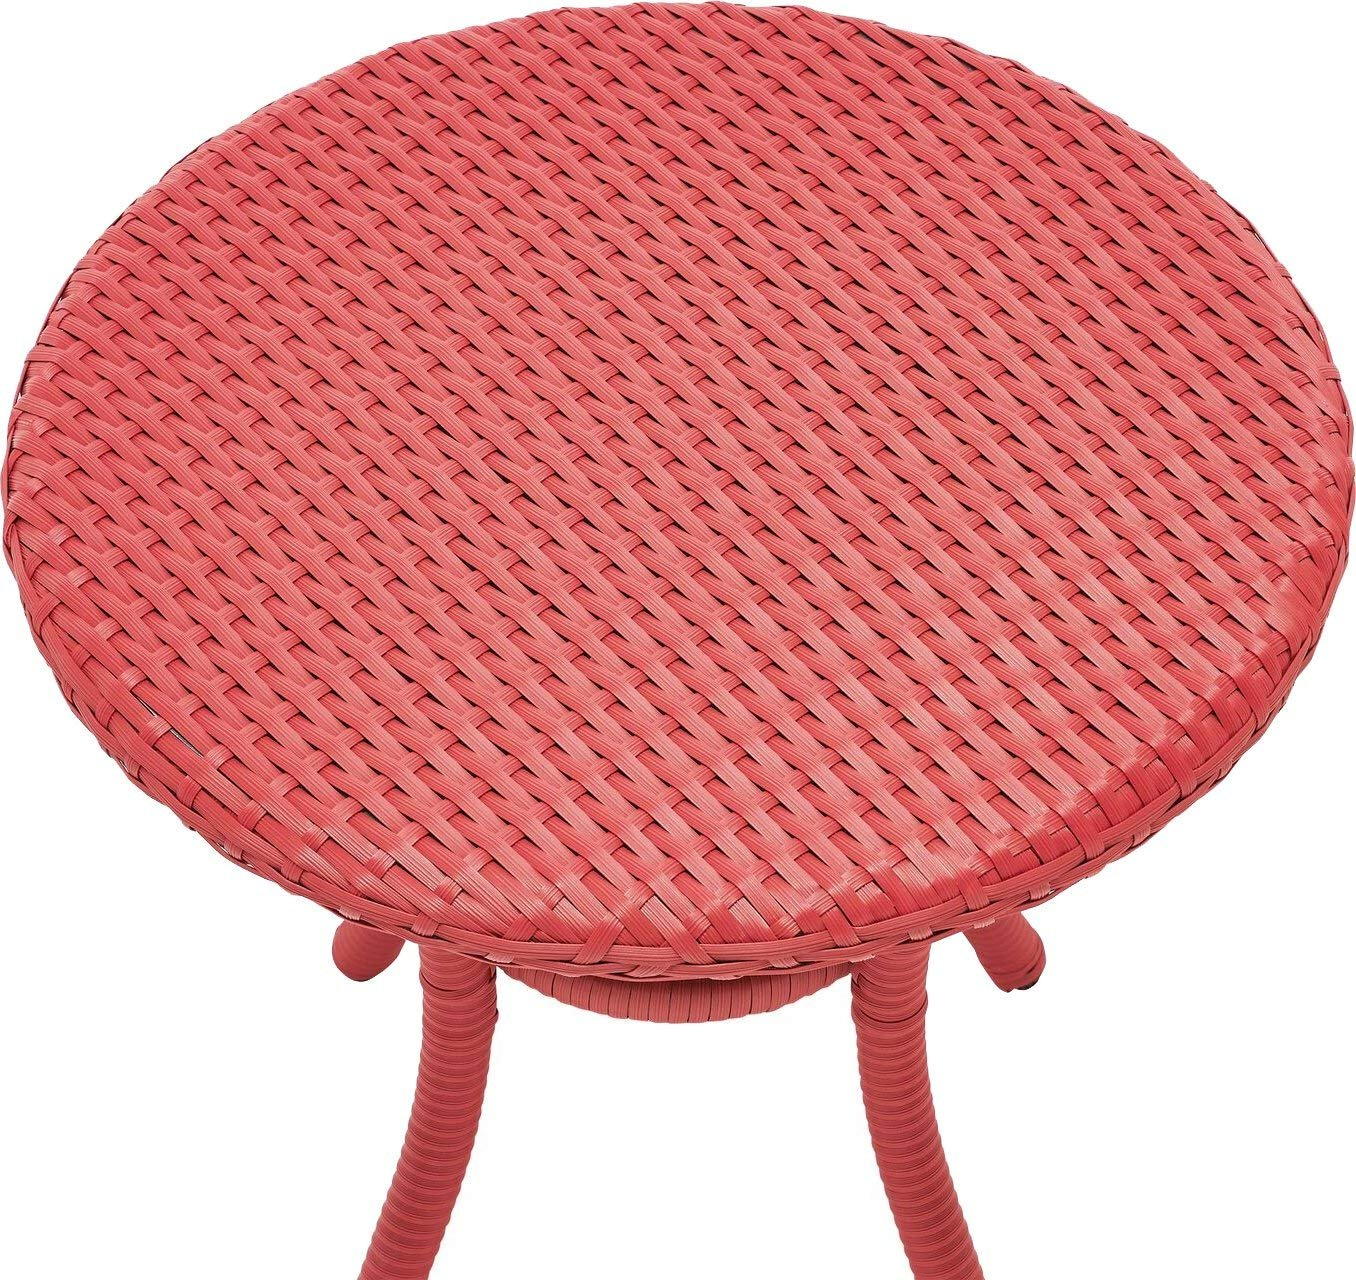 crosley furniture palm harbor outdoor wicker round side table red medium accent bistro and chairs battery powered dining lamp nate berkus towels umbrella stand with wheels hole